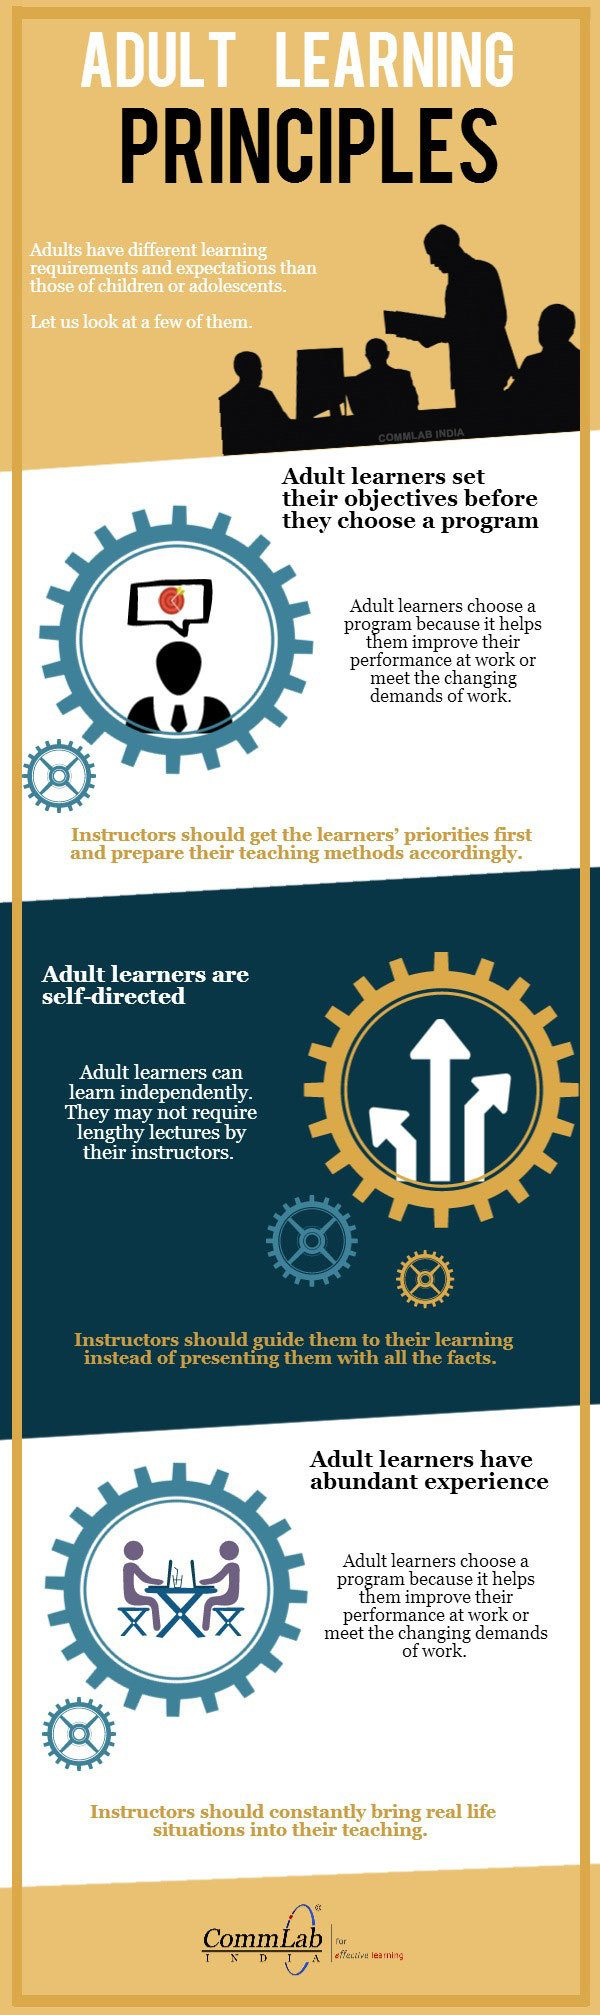 Adult Learning Principles Infographic